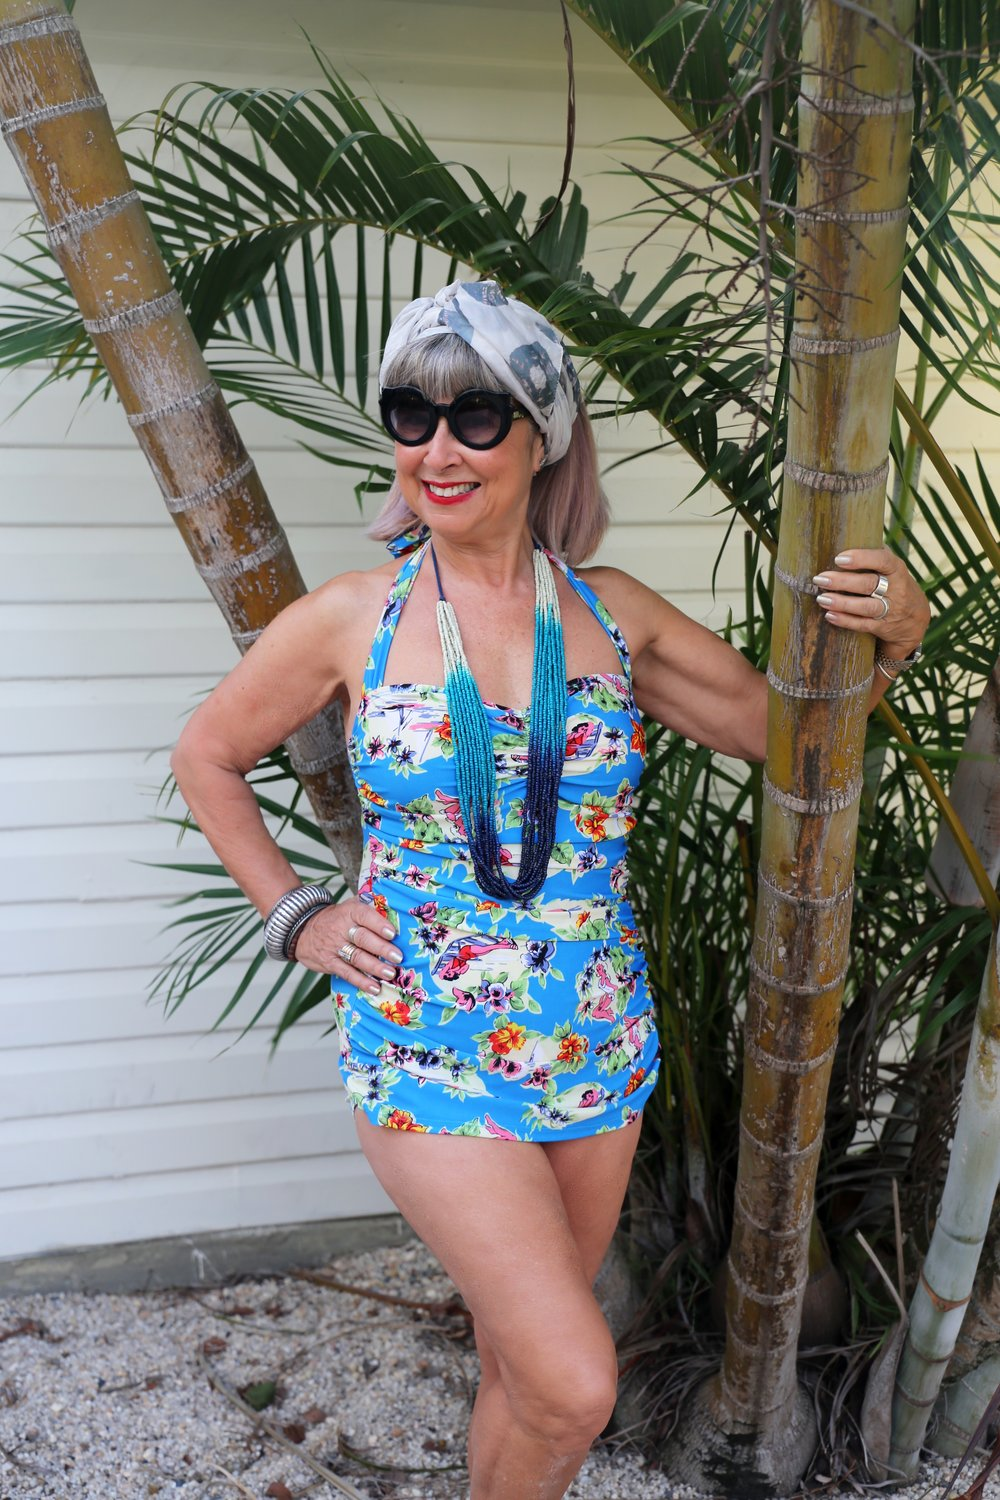 Love my Esther Williams swimsuit, for any age & body type. Fabulous accessories from East Clothing.